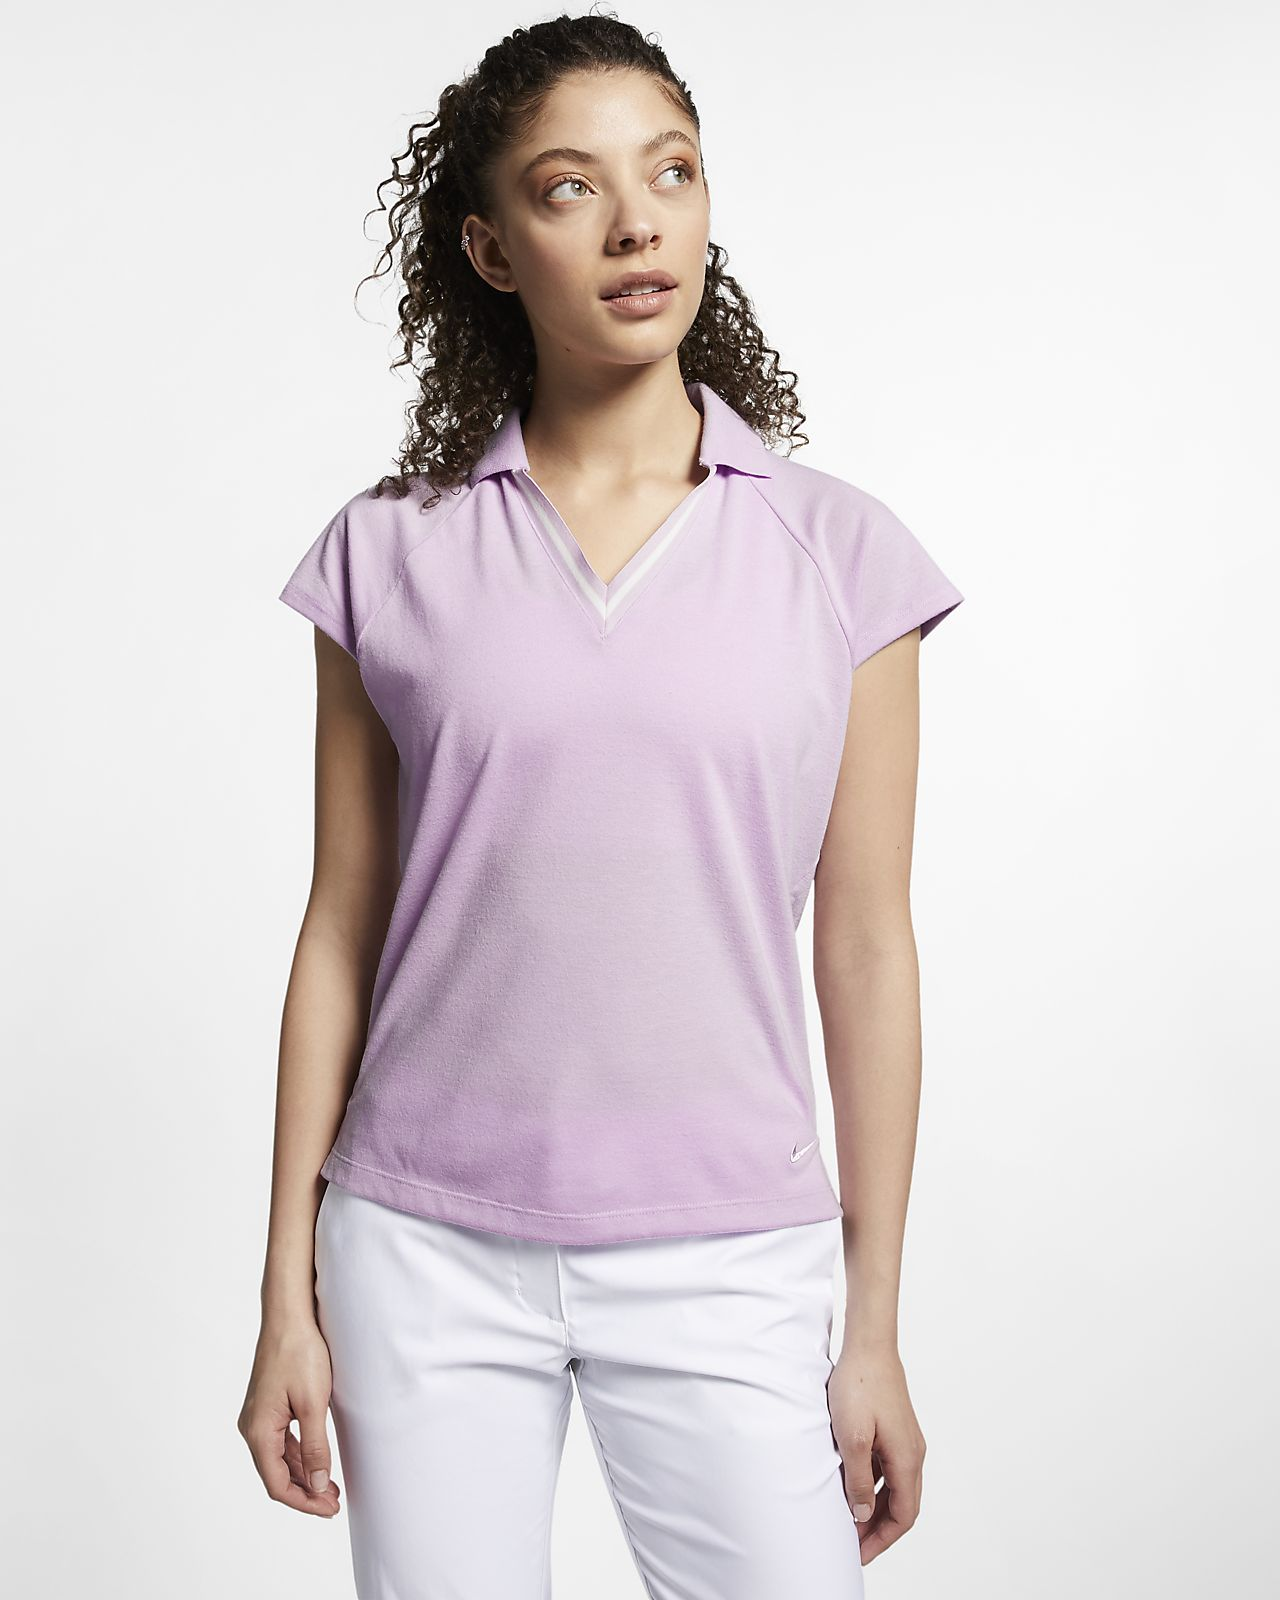 Nike Dri-FIT Women's Golf Polo